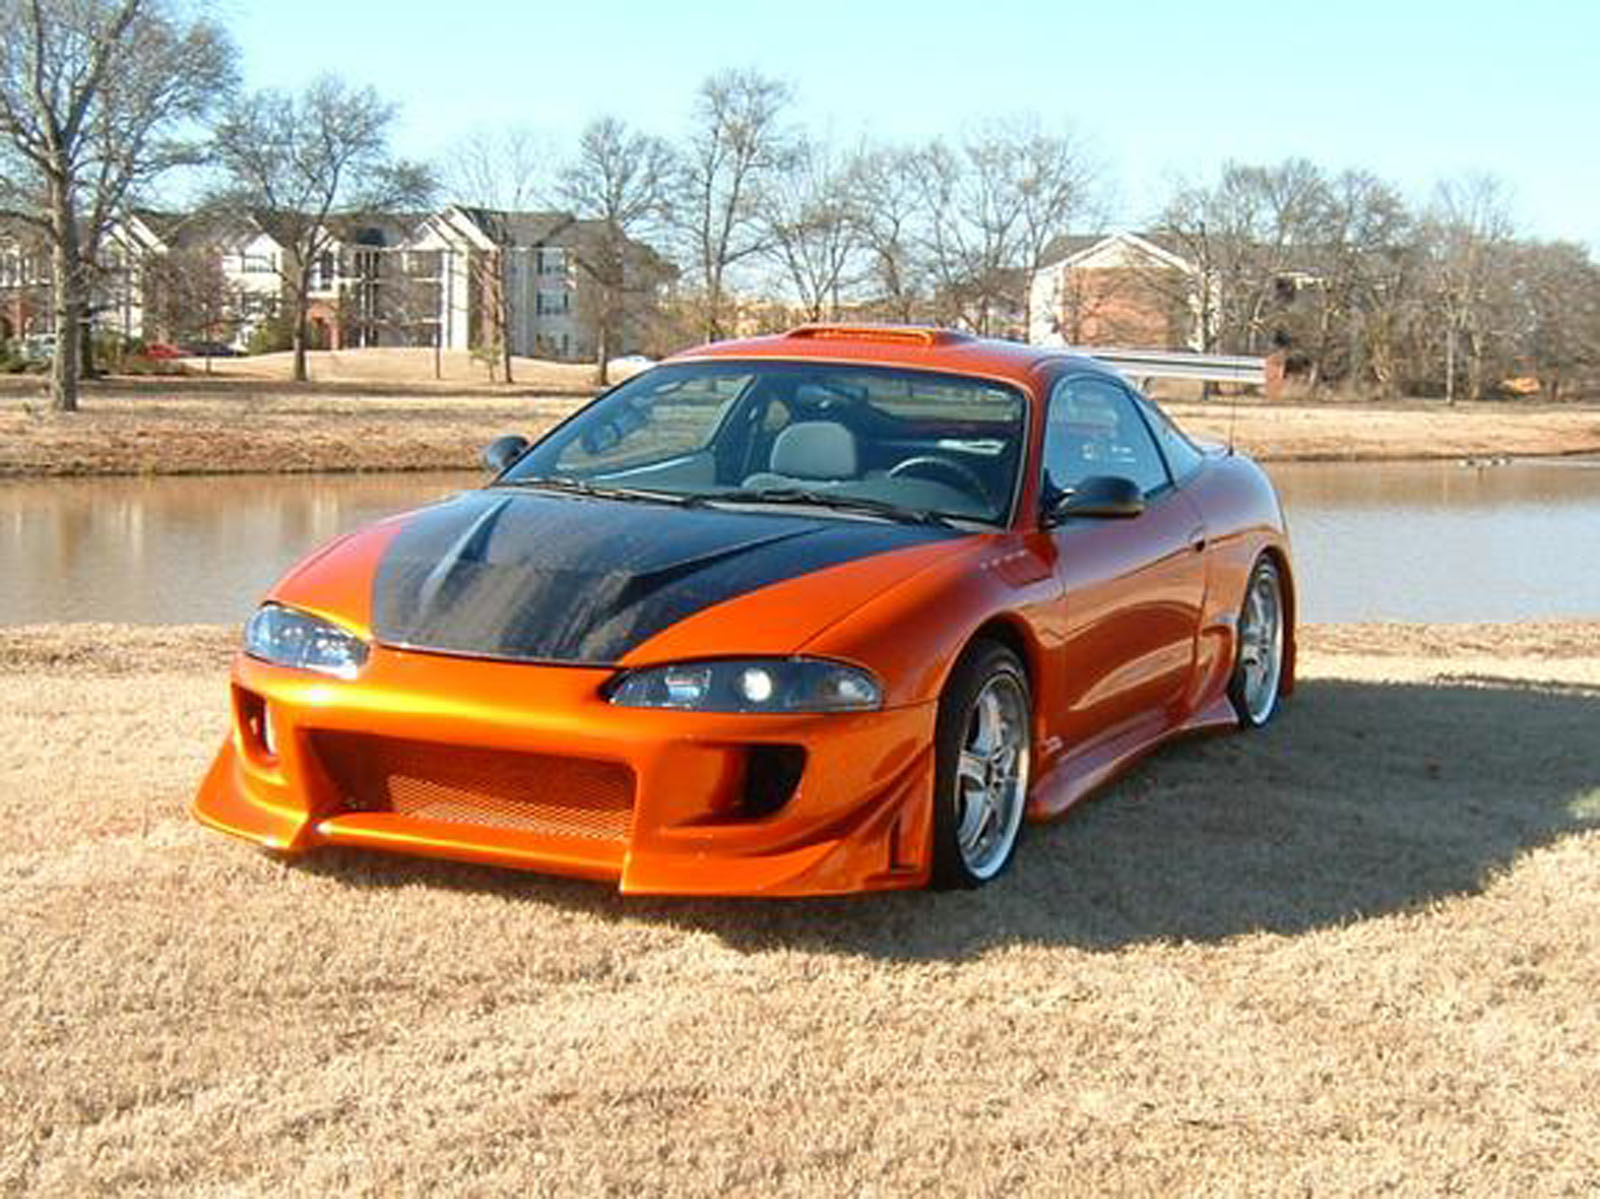 Awd Cars For Sale >> My perfect Mitsubishi Eclipse GSX. 3DTuning - probably the best car configurator!